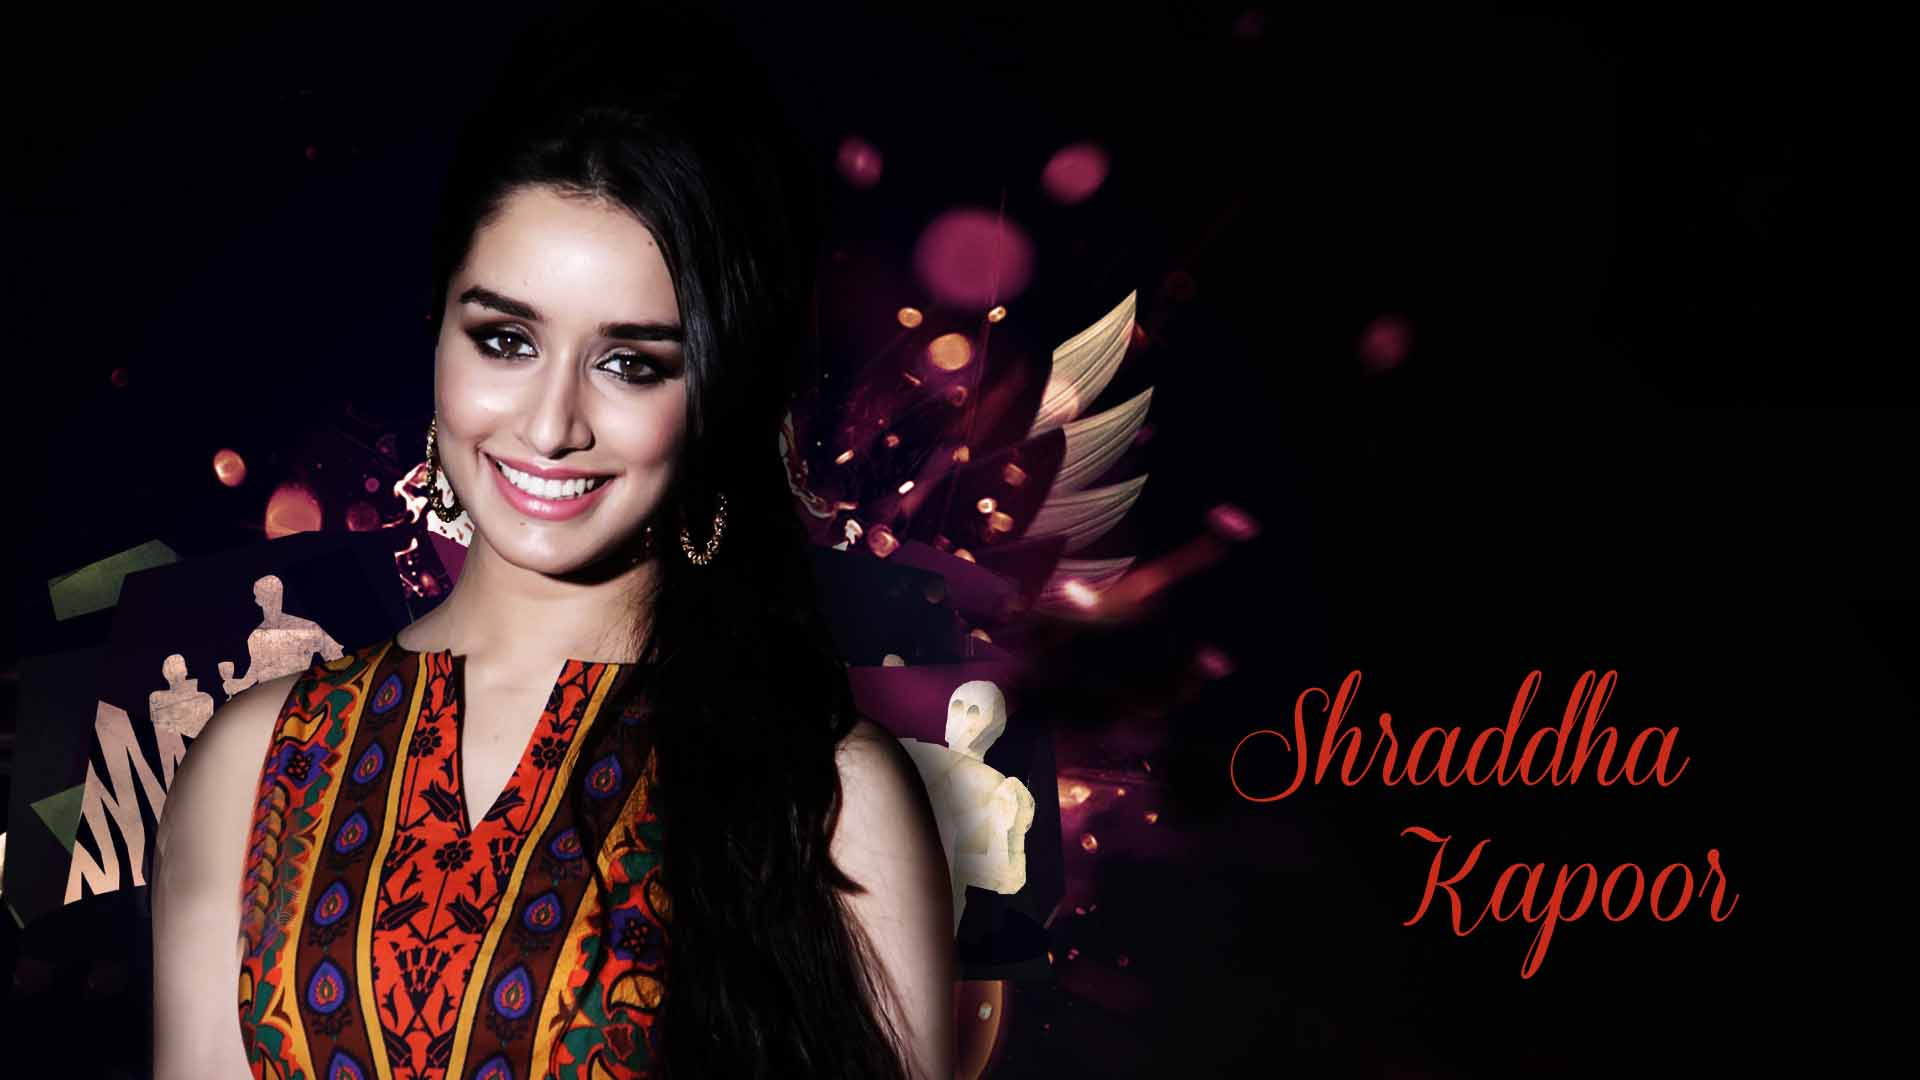 Shraddha Kapoor cute smile face images Latest HD Wallpapers 1920x1080